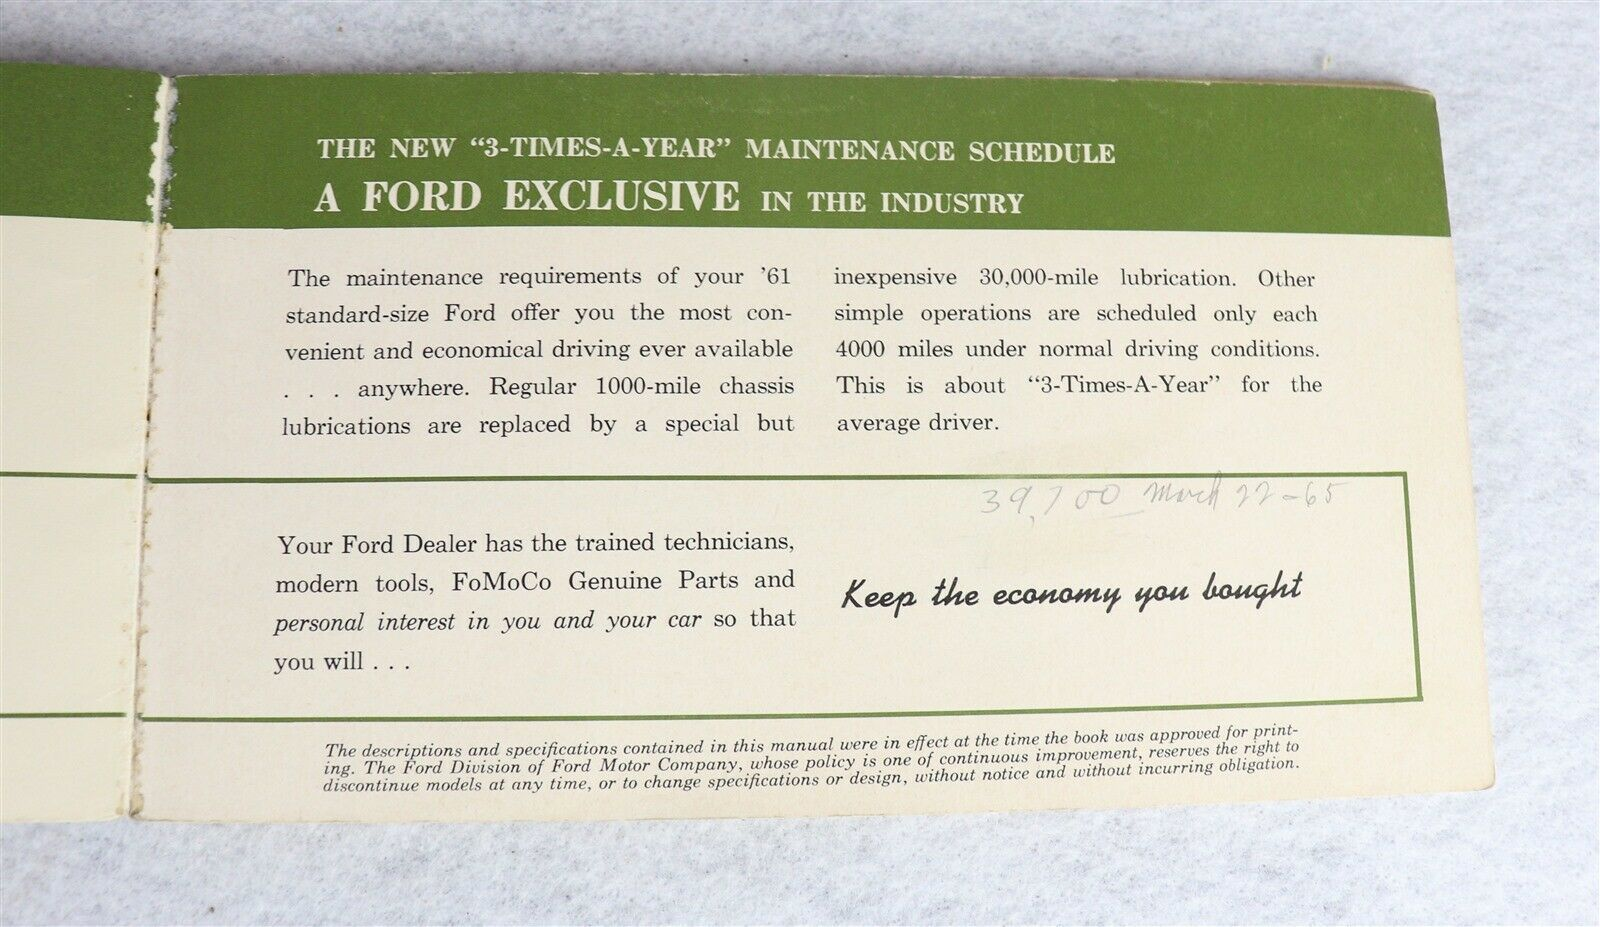 The 1961 Ford Car Owner's Manual